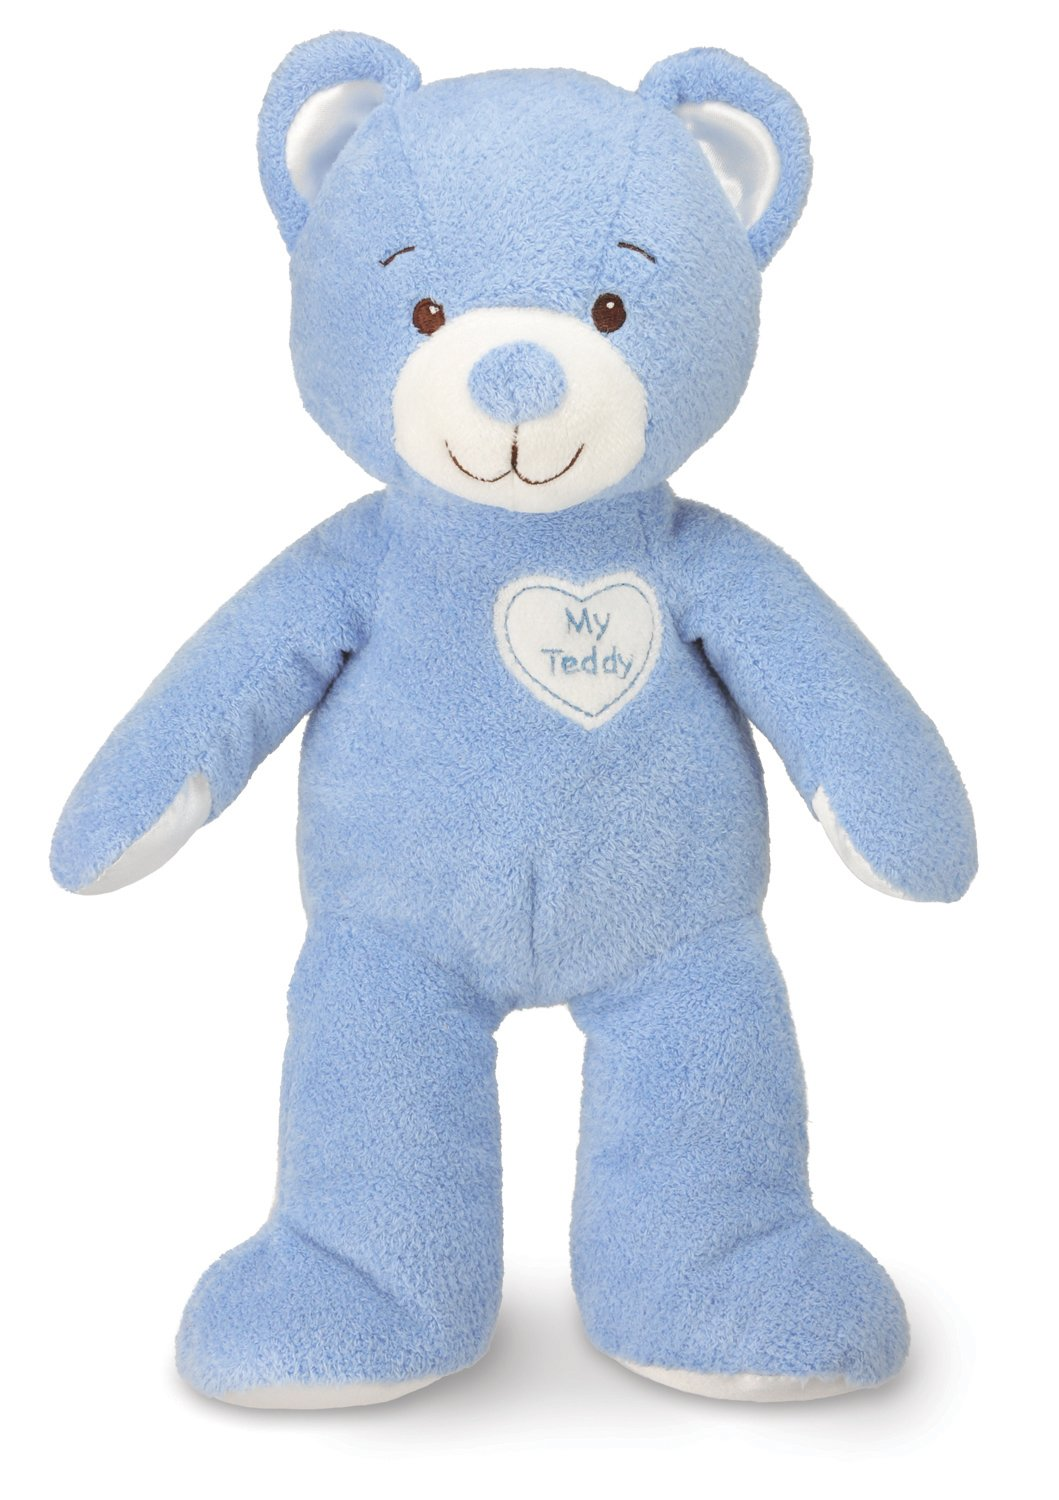 Healthy Baby Asthma and Allergy Certified My Teddy - Blue